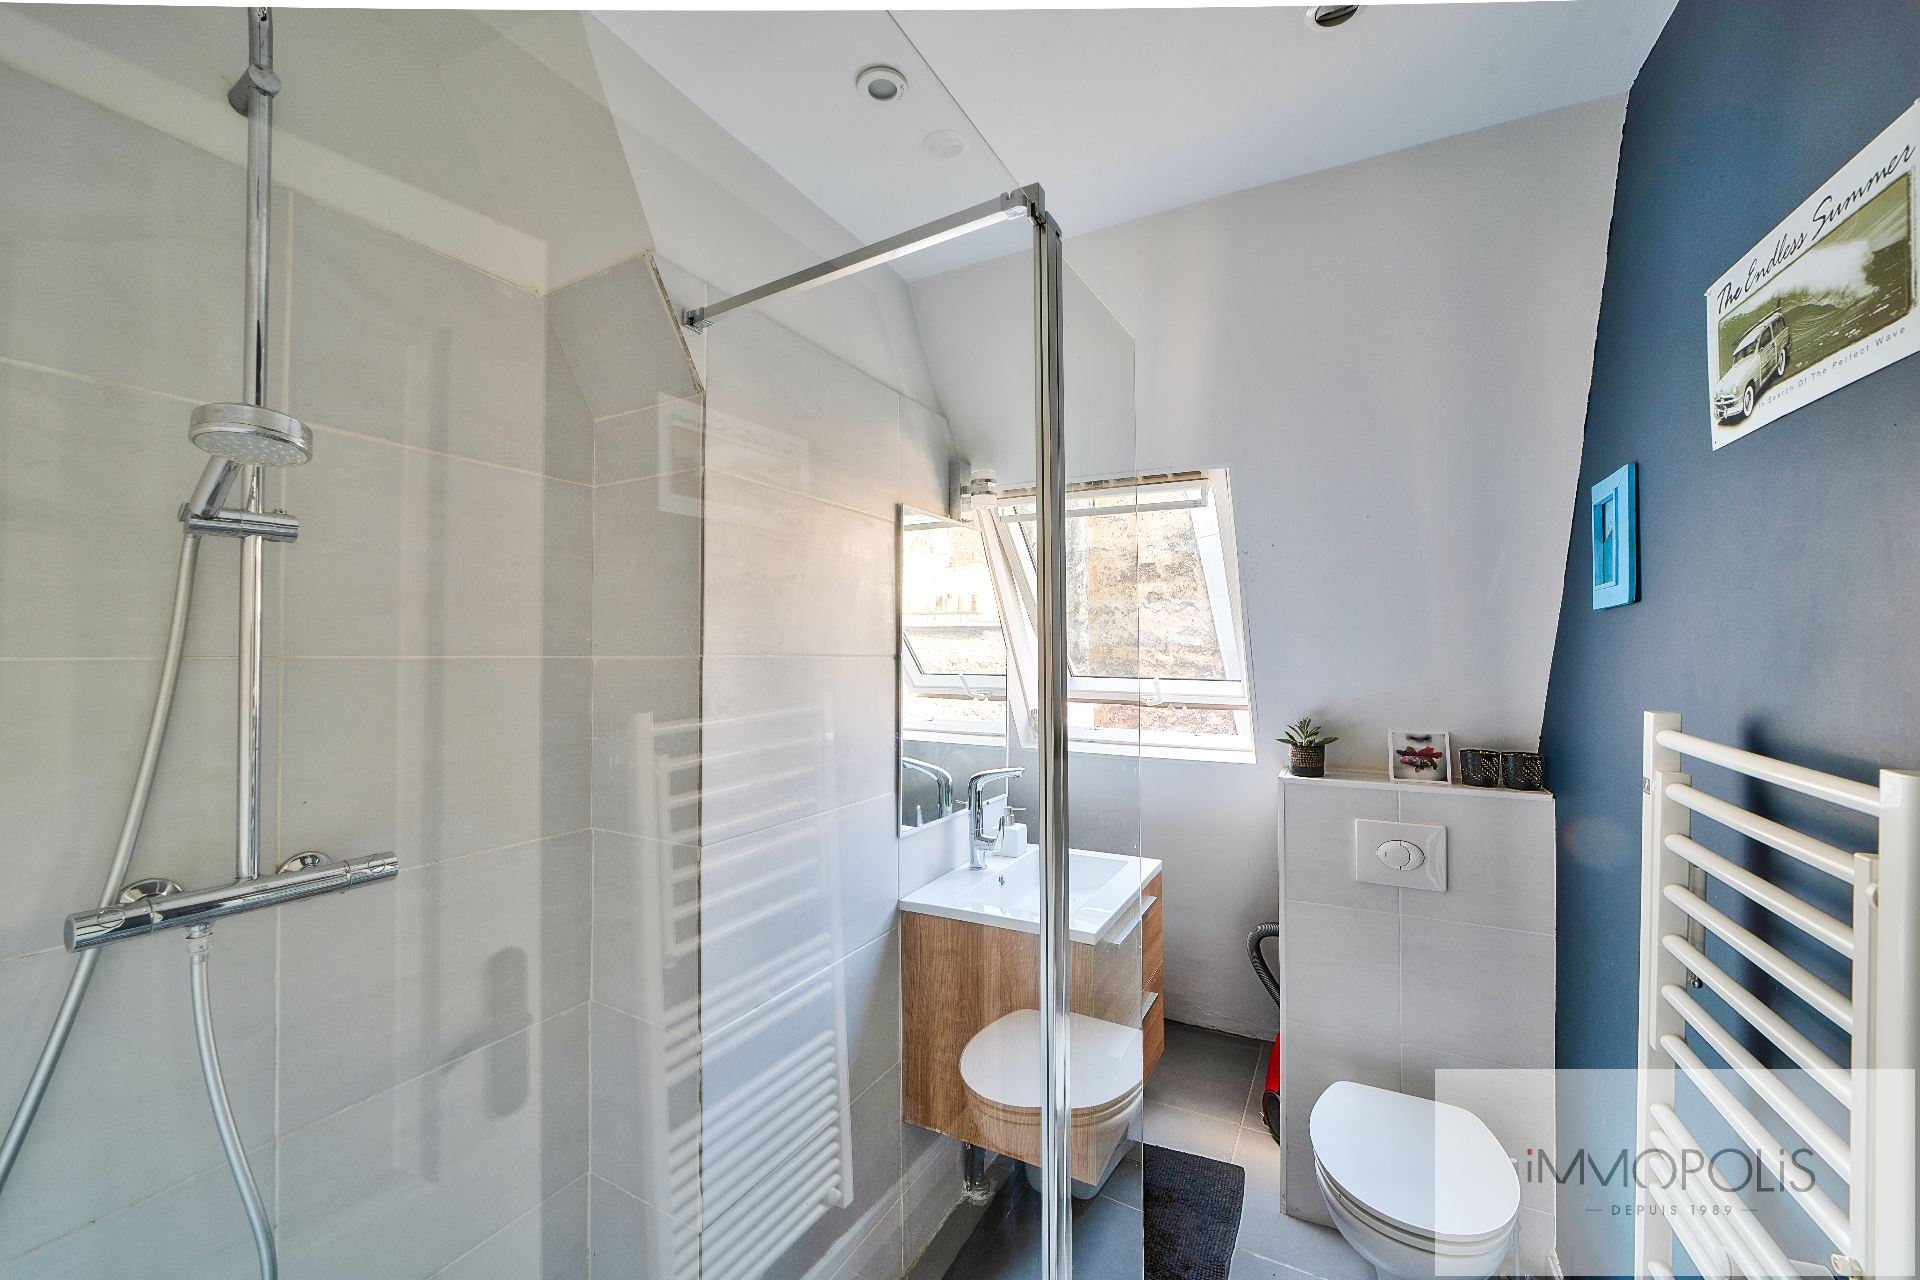 Beautiful 2 rooms in 6th and last floor not overlooked, full sun, with 2 balconies! 8